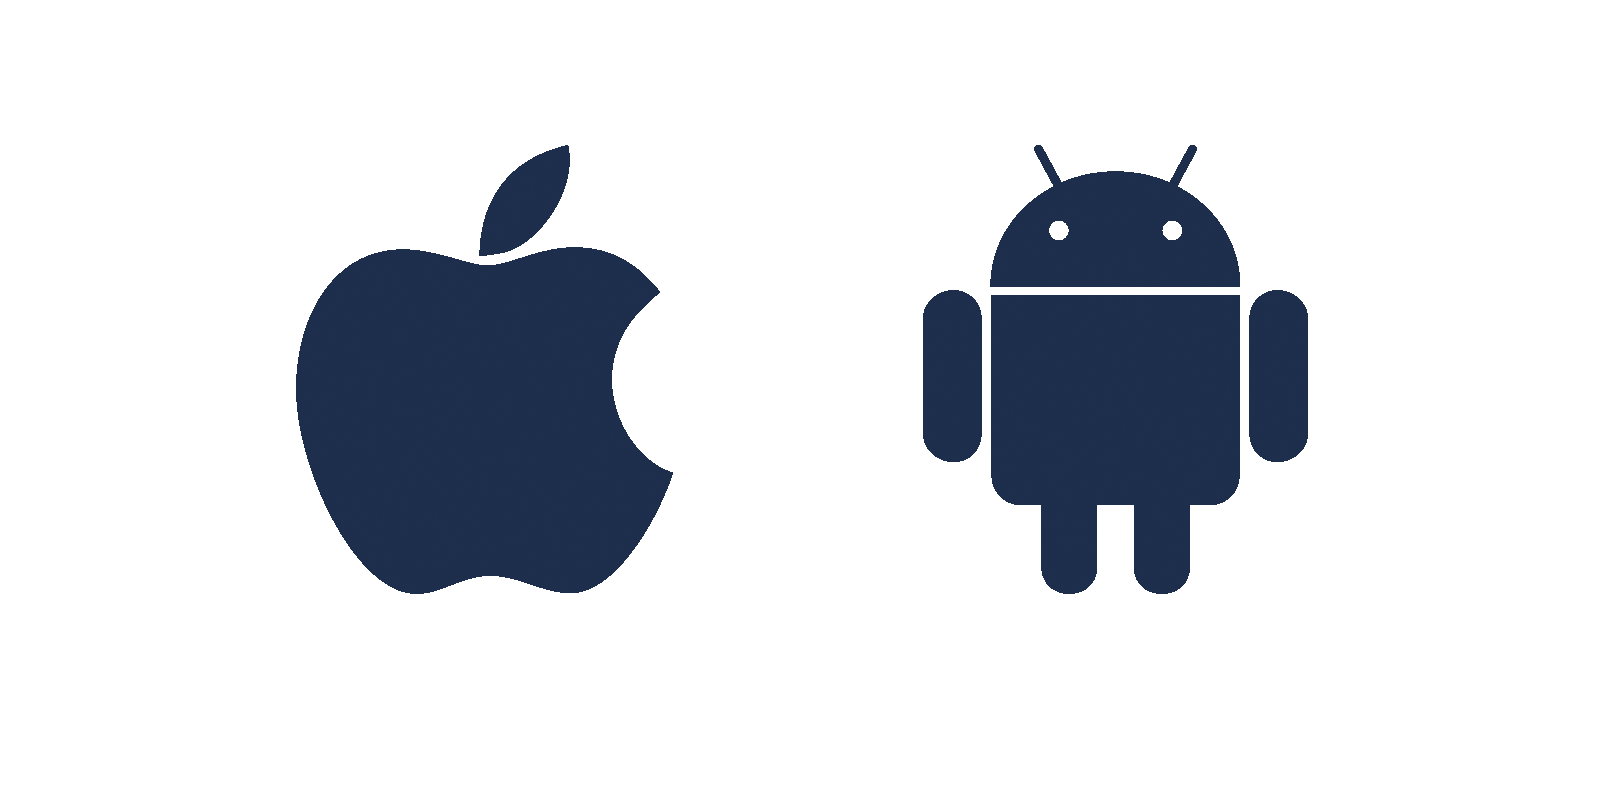 appleAndAndroid.png